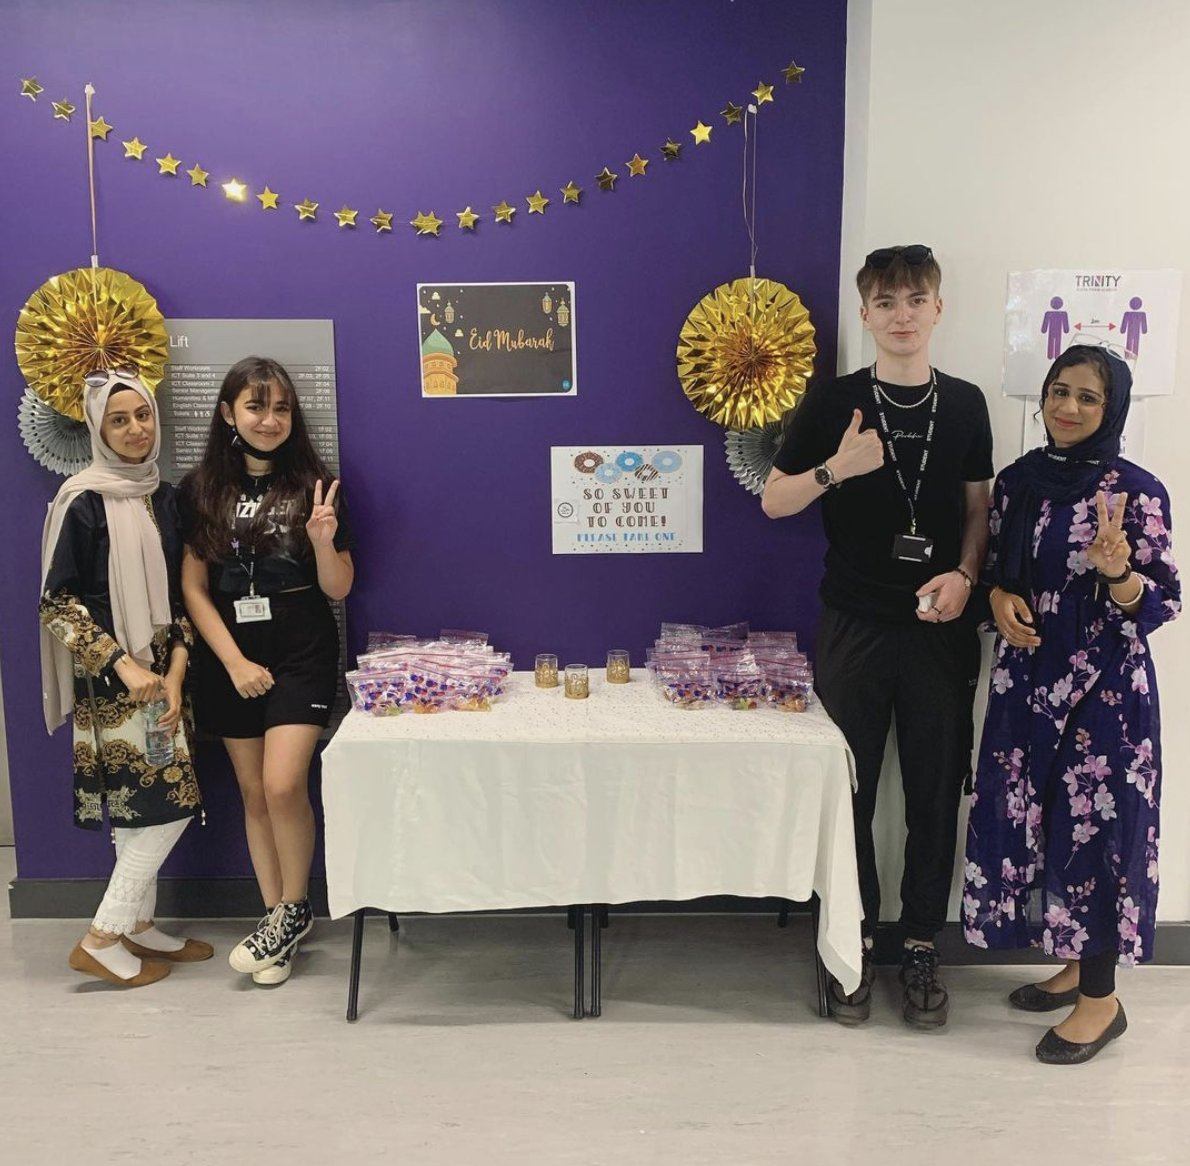 🌙 EID AL-ADHA 🌙  To celebrate this festival of Islam, our Pupil Leadership Group have put together a display full of Halal sweet treats for our students to take away with them! Eid Mubarak to all of our Muslim students, staff and followers over these next days.❤️🌙 #EidMubarak